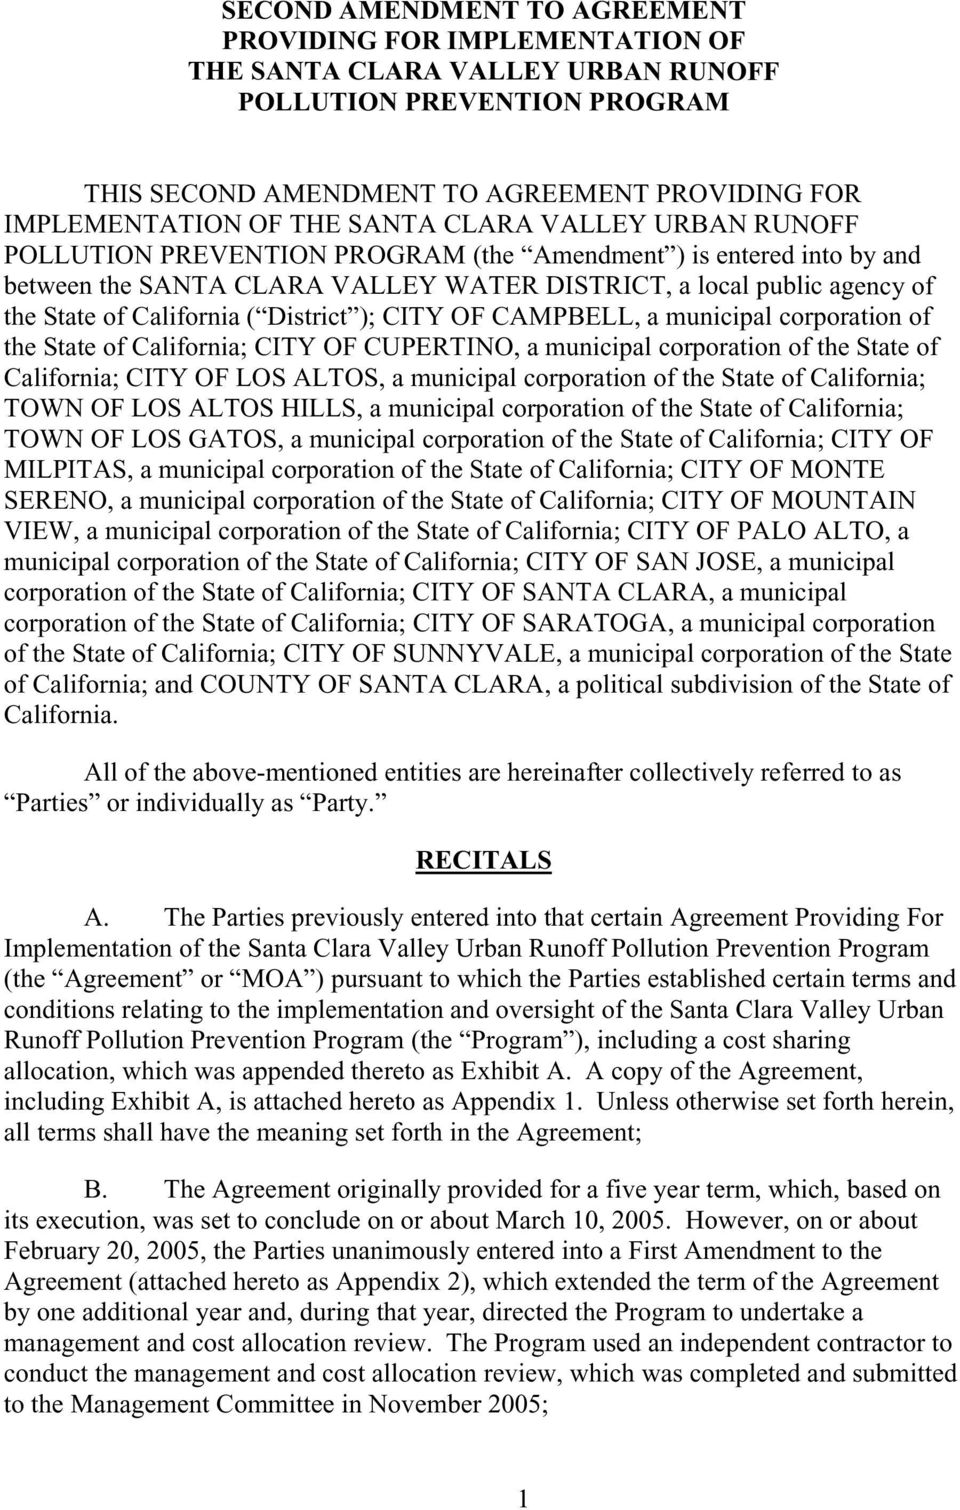 District ); CITY OF CAMPBELL, a municipal corporation of the State of California; CITY OF CUPERTINO, a municipal corporation of the State of California; CITY OF LOS ALTOS, a municipal corporation of